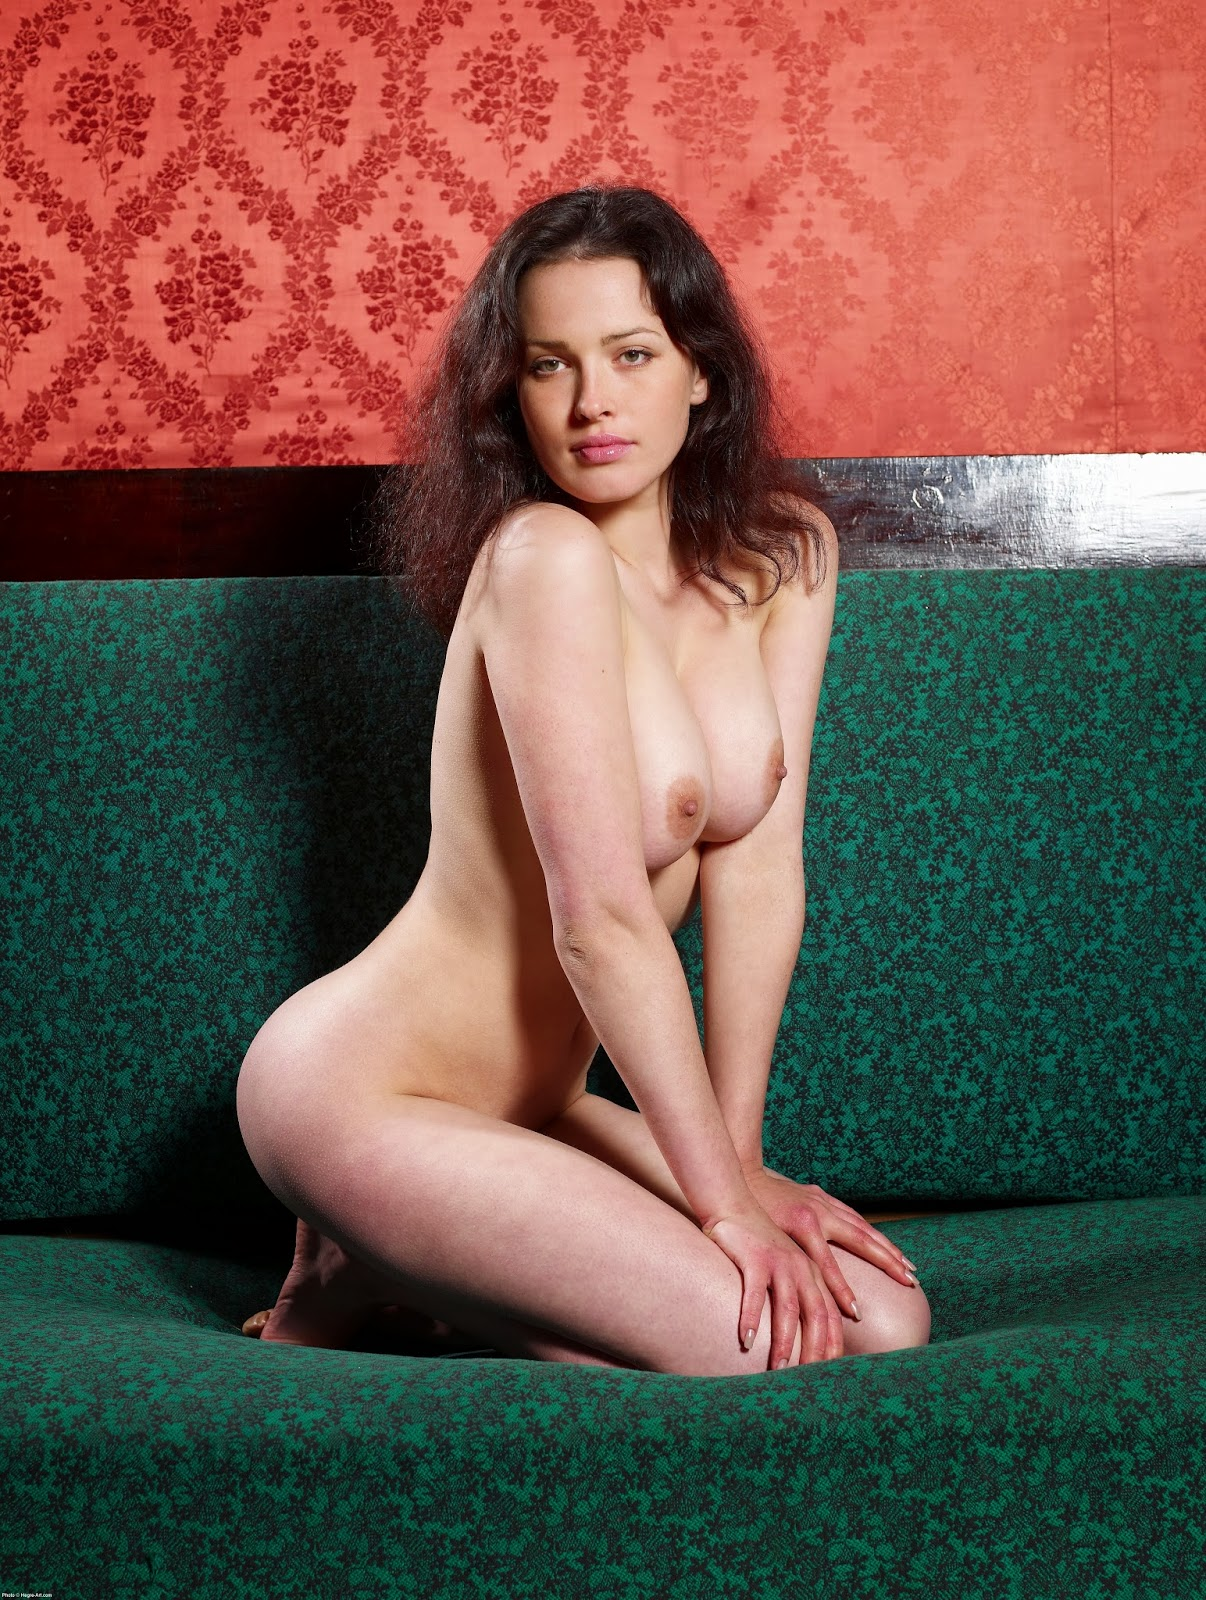 Dasha Astafieva Nude Pics Good naked dasha astafieva | celebrities image